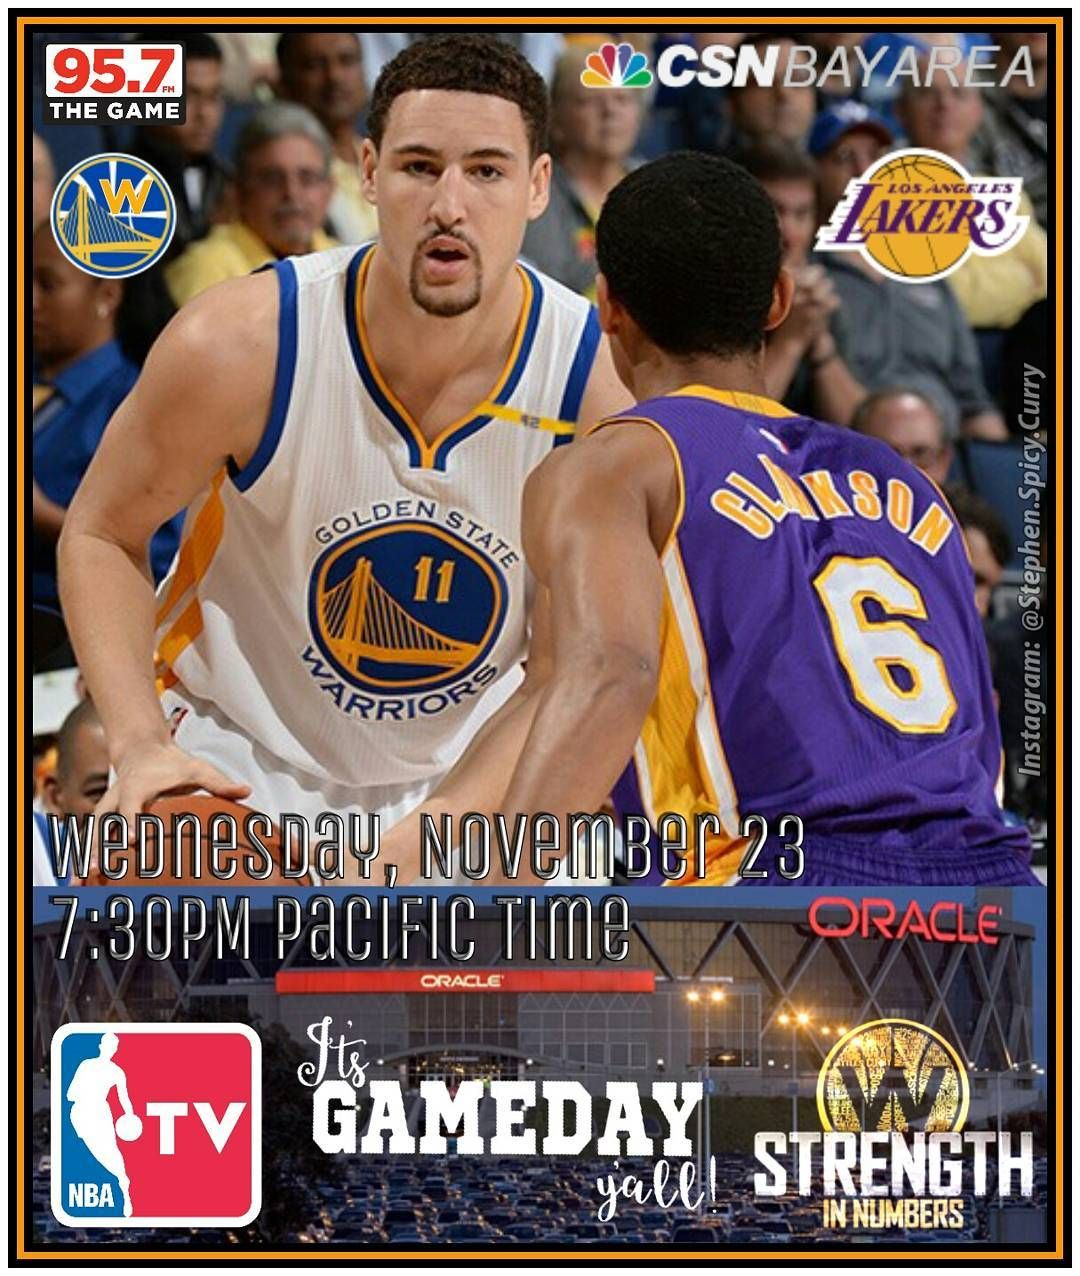 brand new 743de 2ff22 Jordan Clarkson and the Lakers come to Oracle to challenge Klay and the  Dubs to a